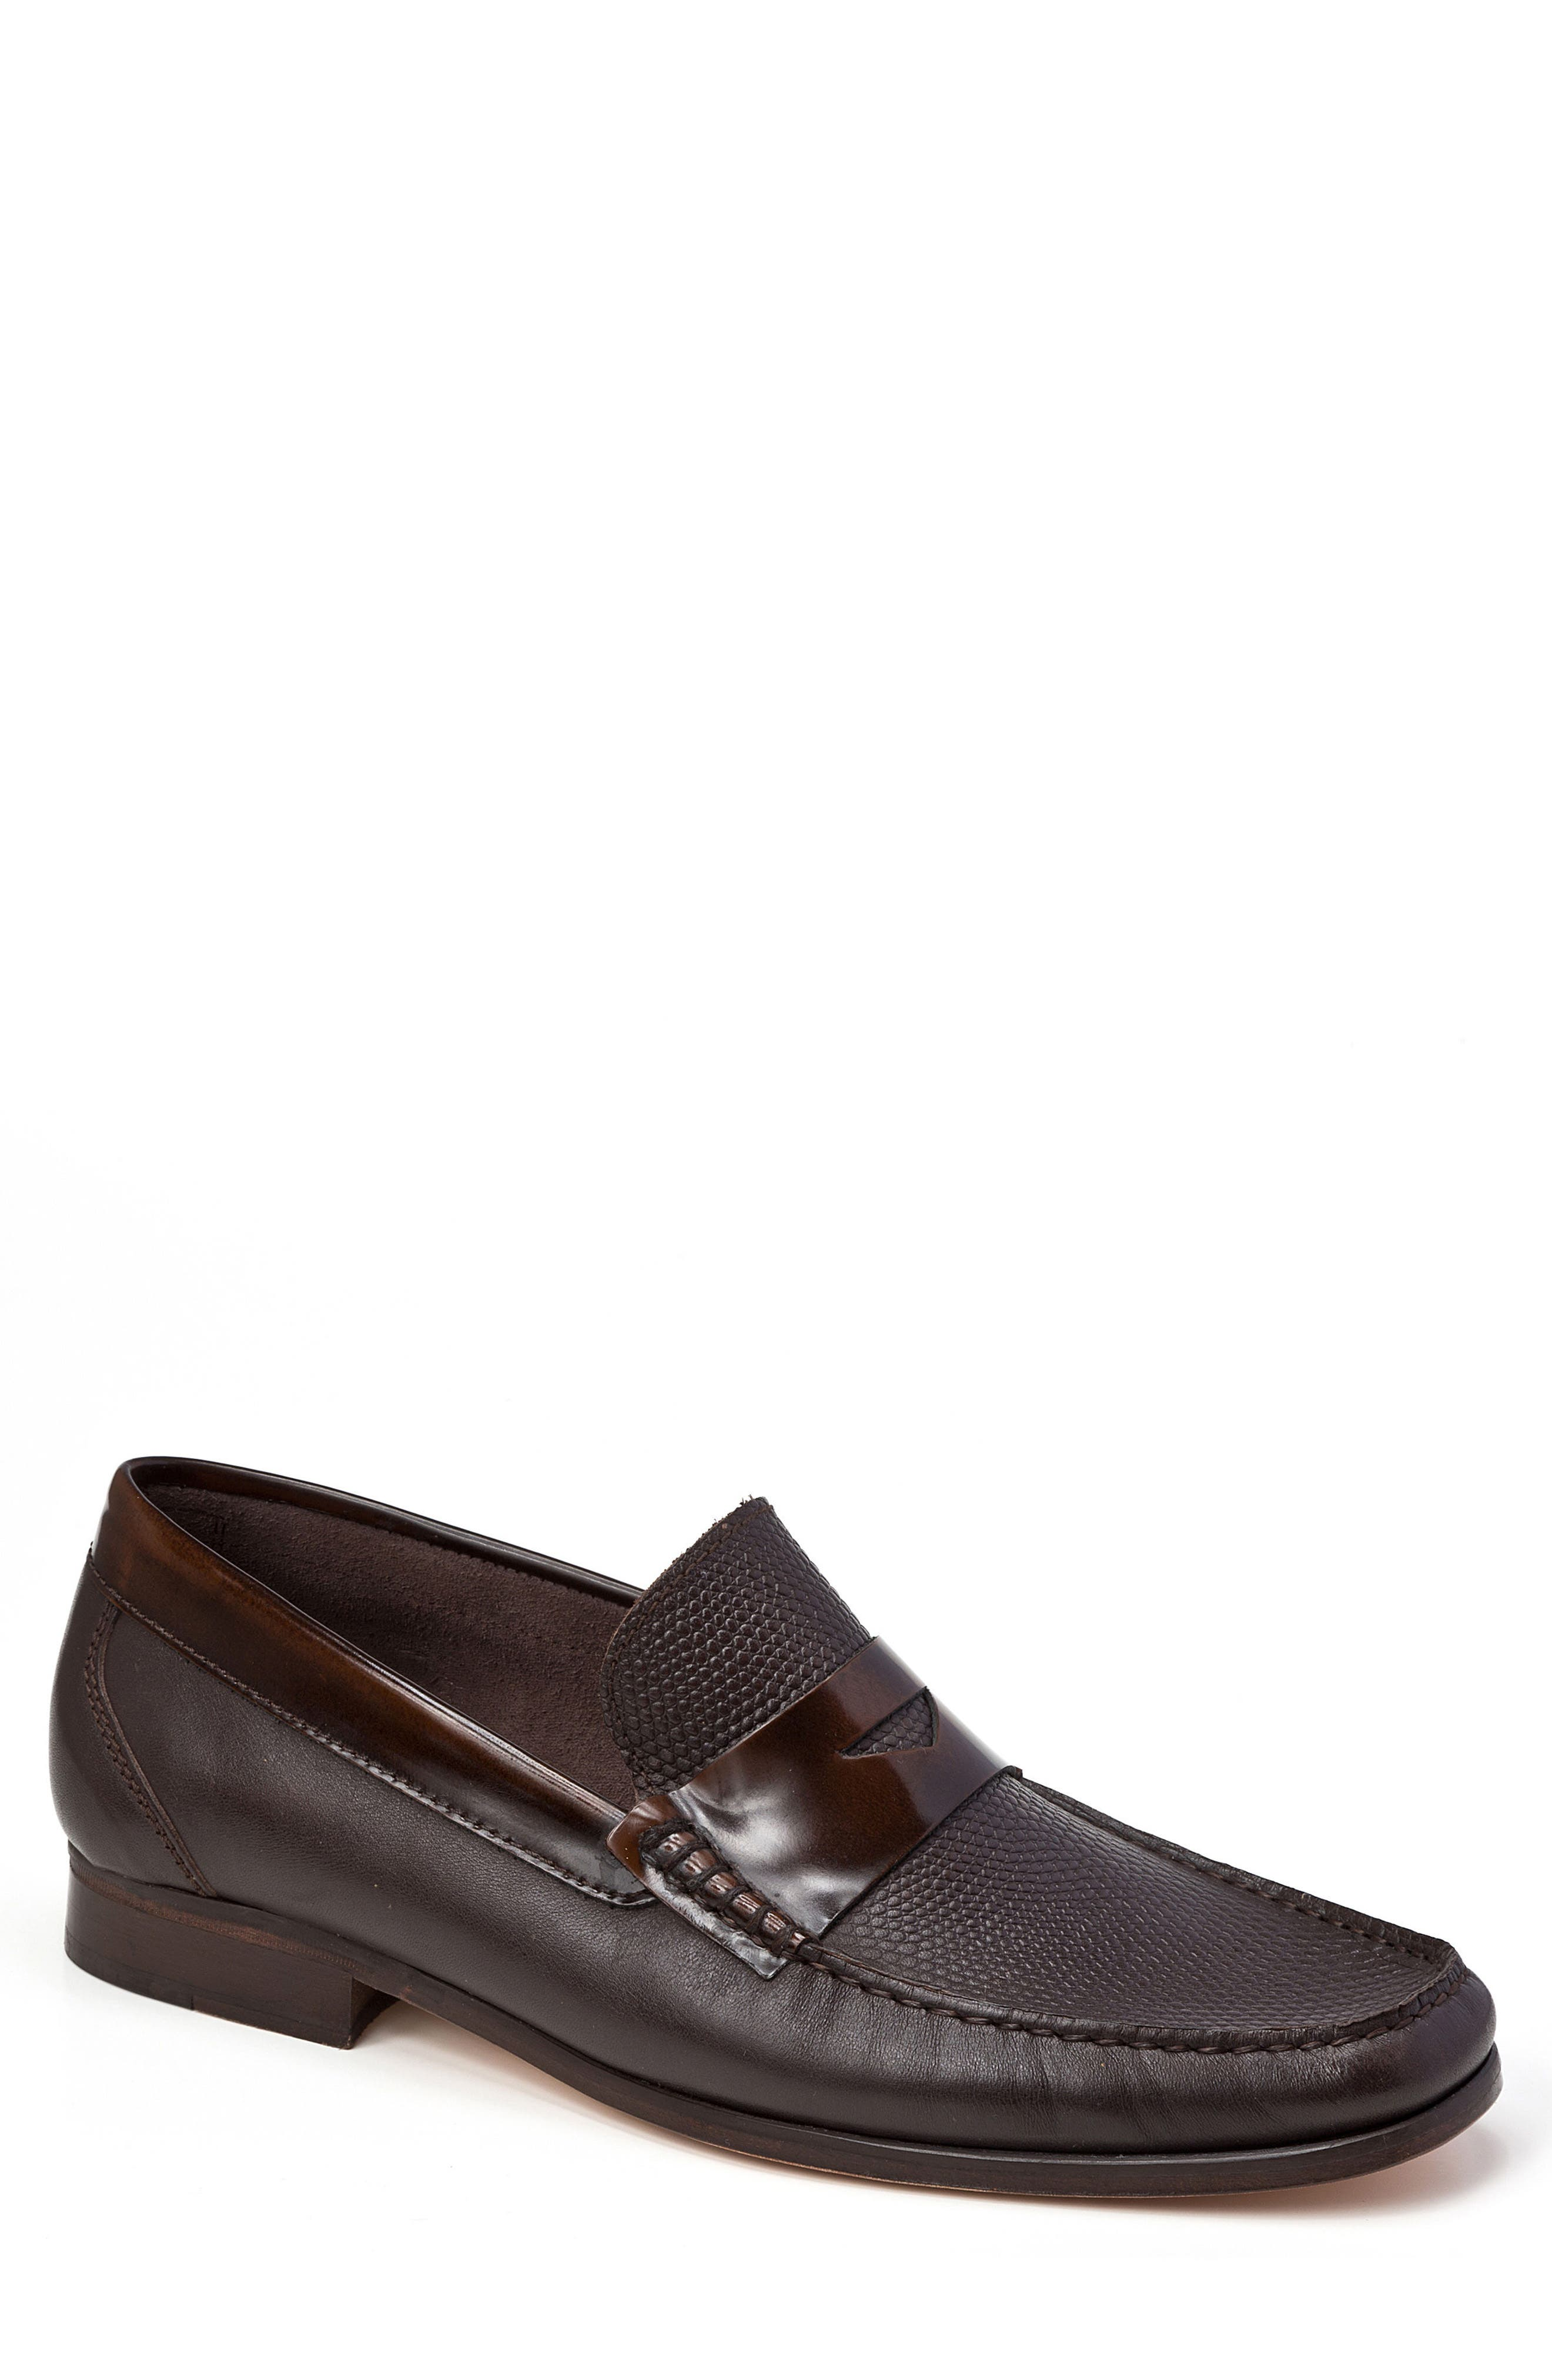 Bilbao Pebble Embossed Penny Loafer,                         Main,                         color, BROWN